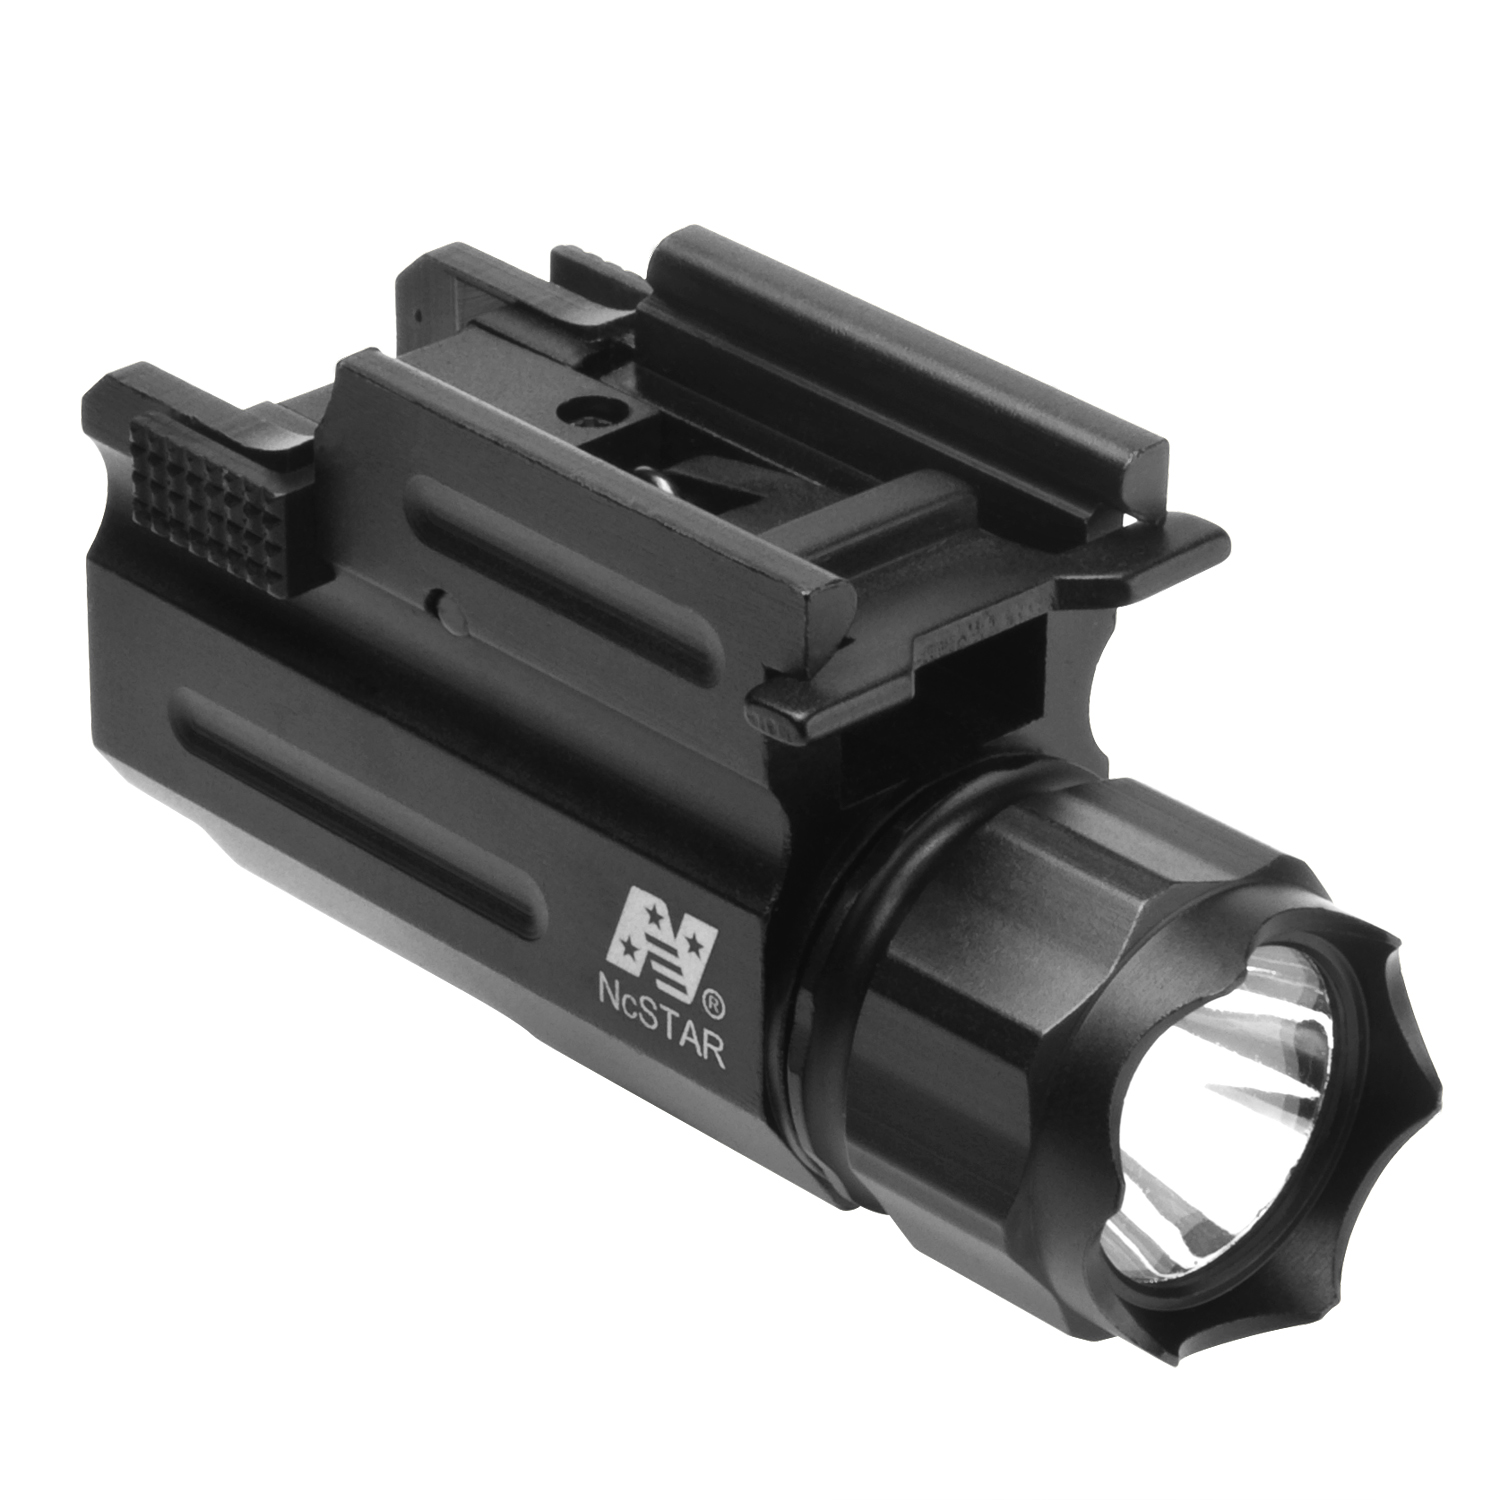 Ncstar Tactical gun Rifle Flashlight With Quick Release